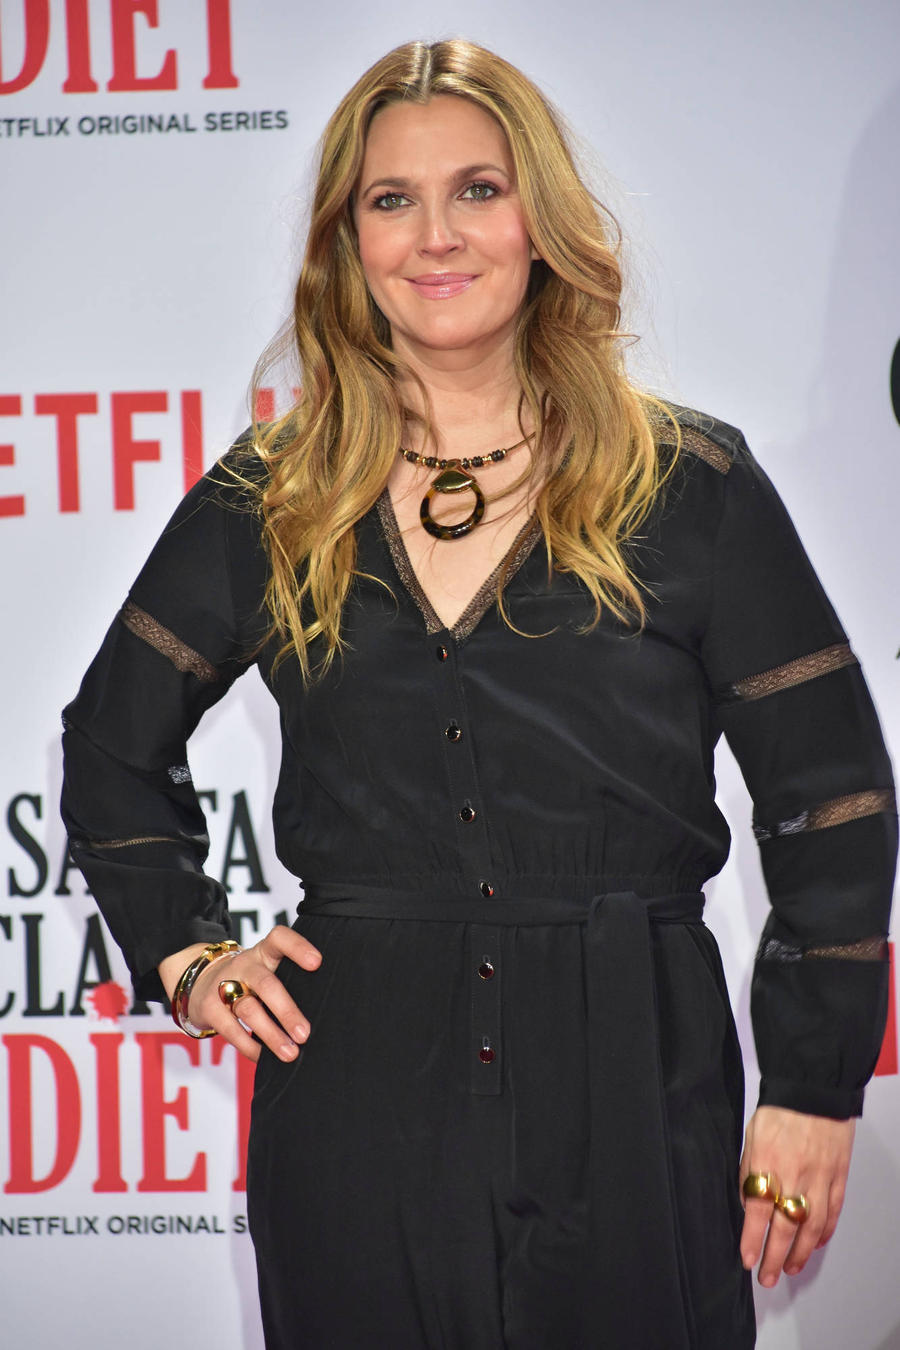 Zombie Drama Helped Drew Barrymore Shed Marriage Split Weight